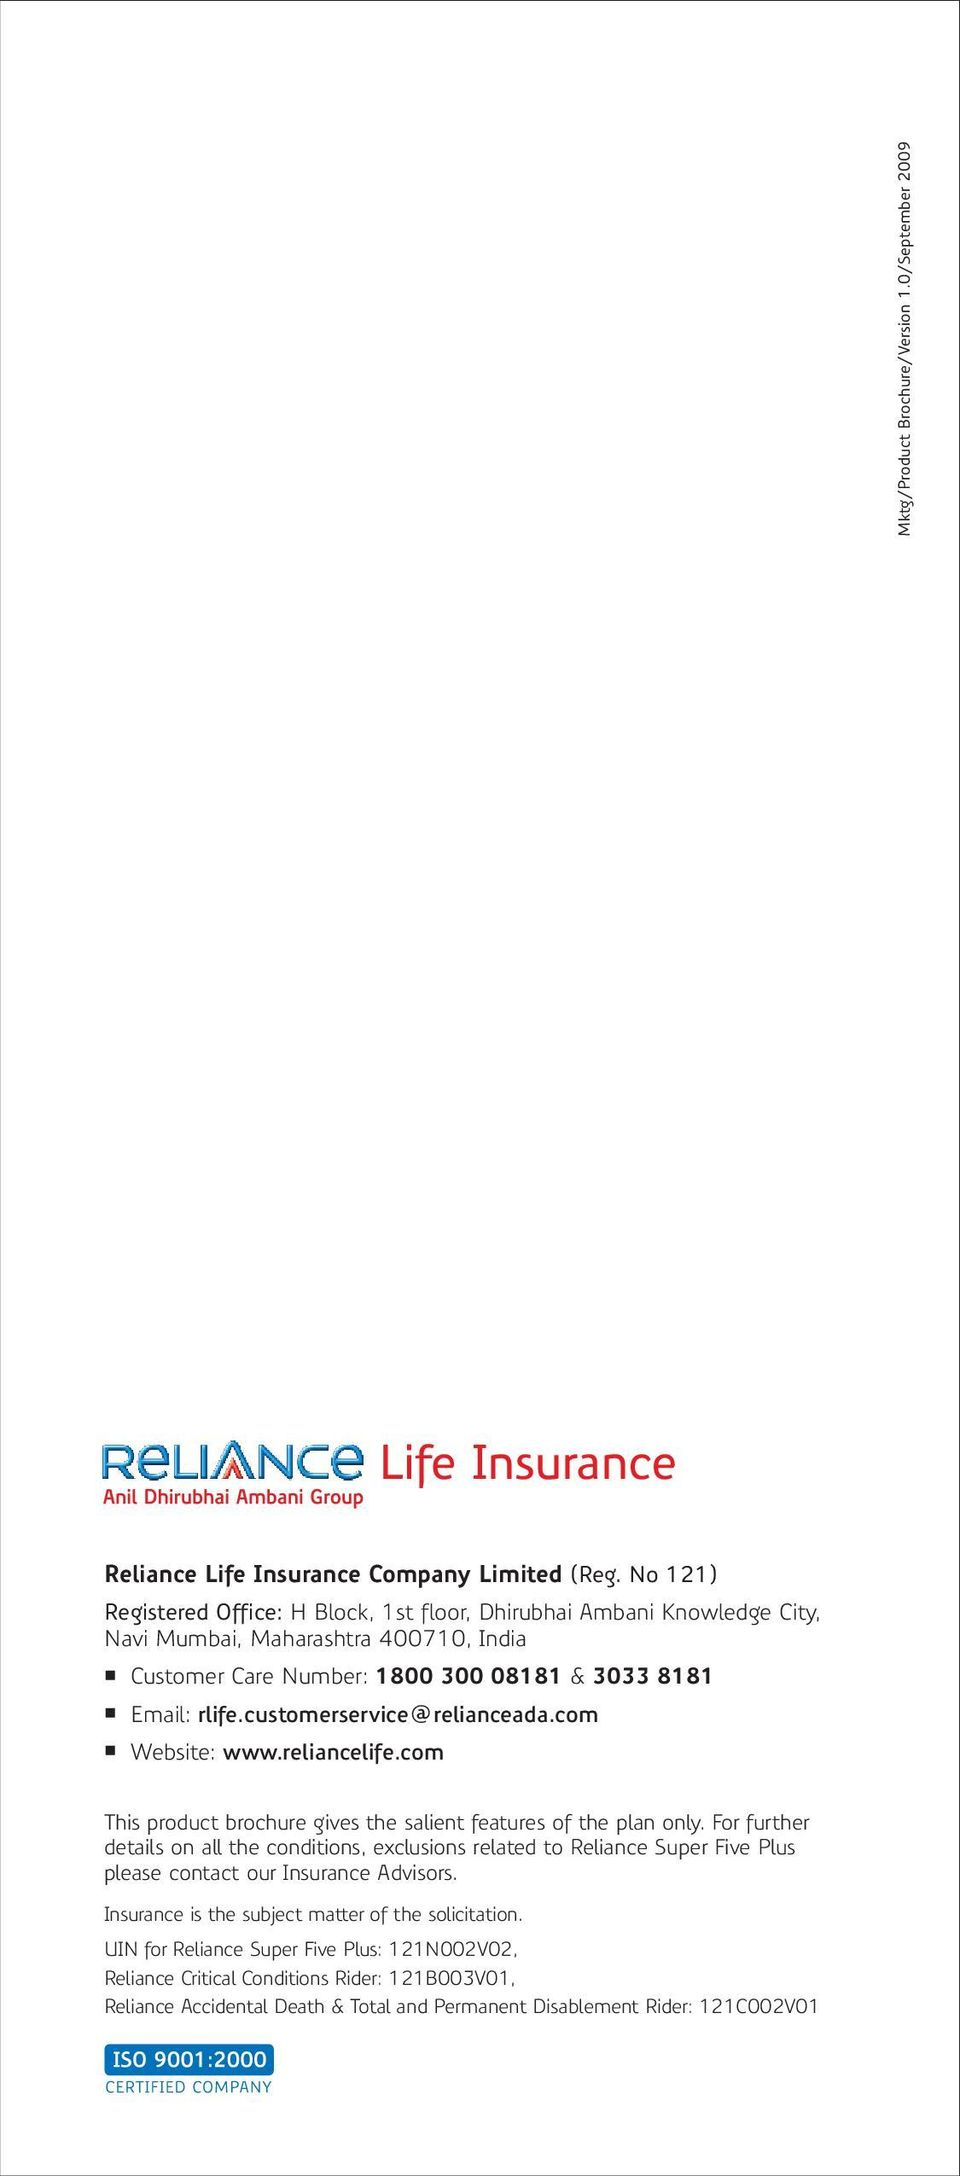 customerservice@relianceada.com Website: www.reliancelife.com This product brochure gives the salient features of the plan only.